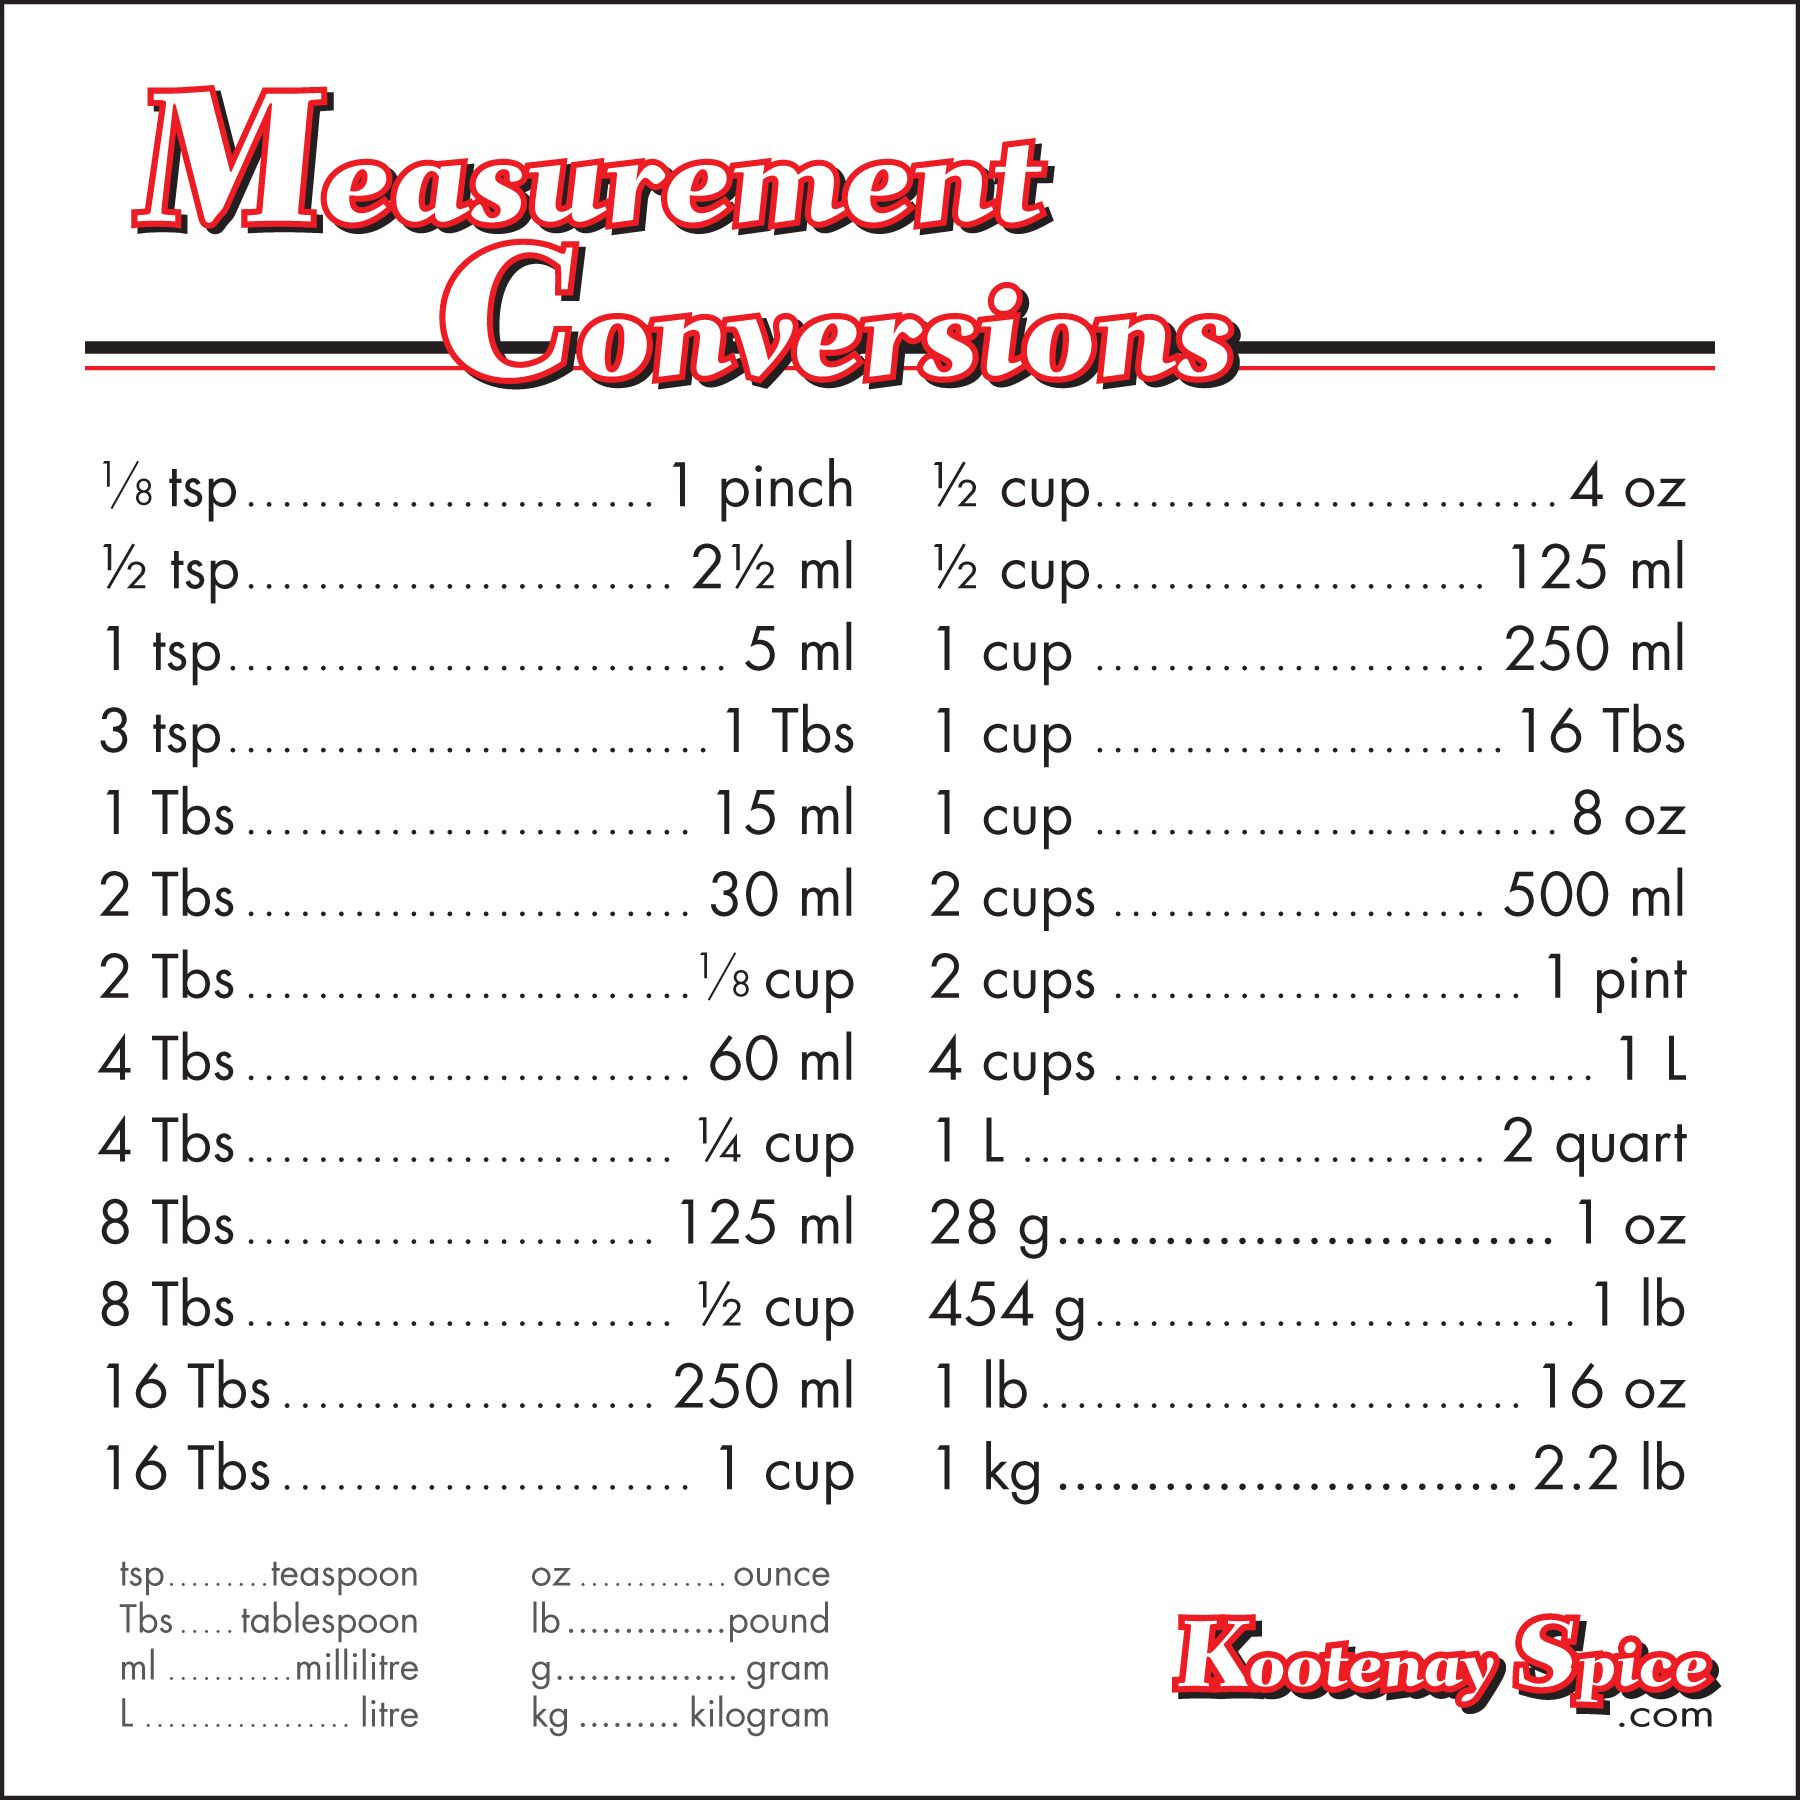 cooking conversion charts on pinterest measurement conversions meat temperature chart and charts. Black Bedroom Furniture Sets. Home Design Ideas